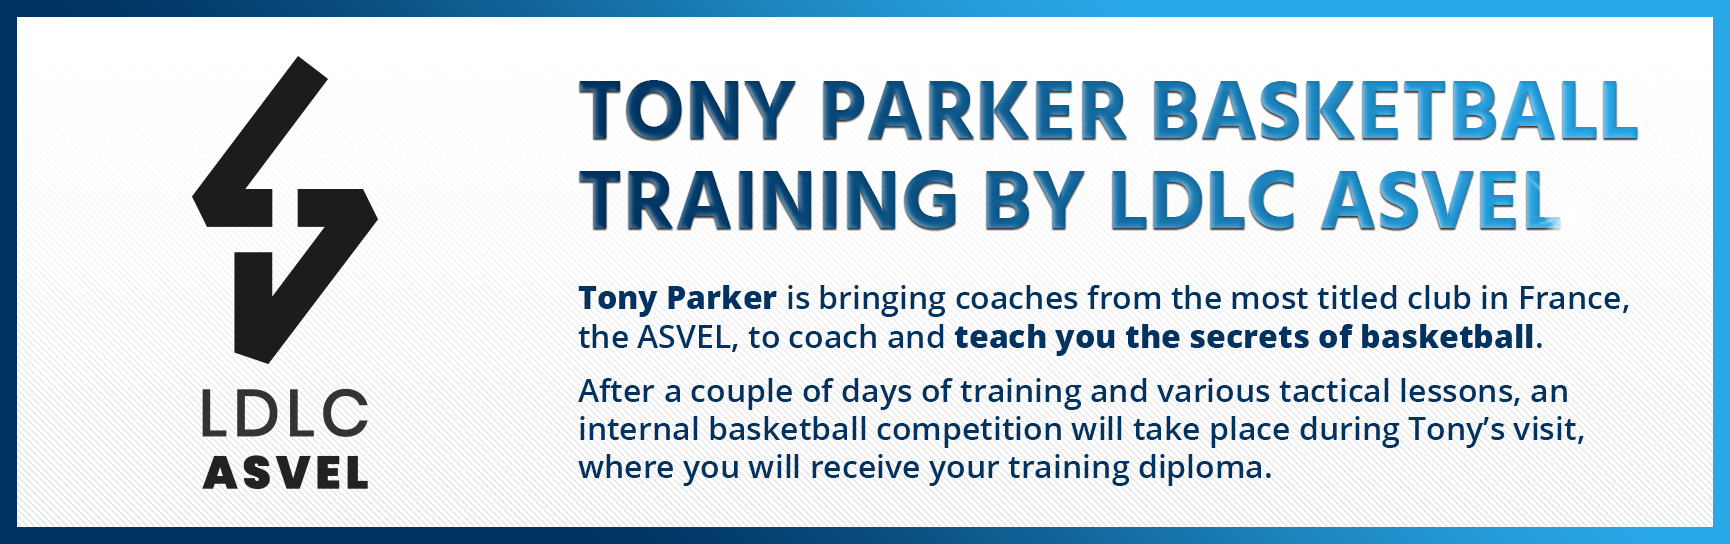 Tony Parker Basketball Training by LDLC Asvel